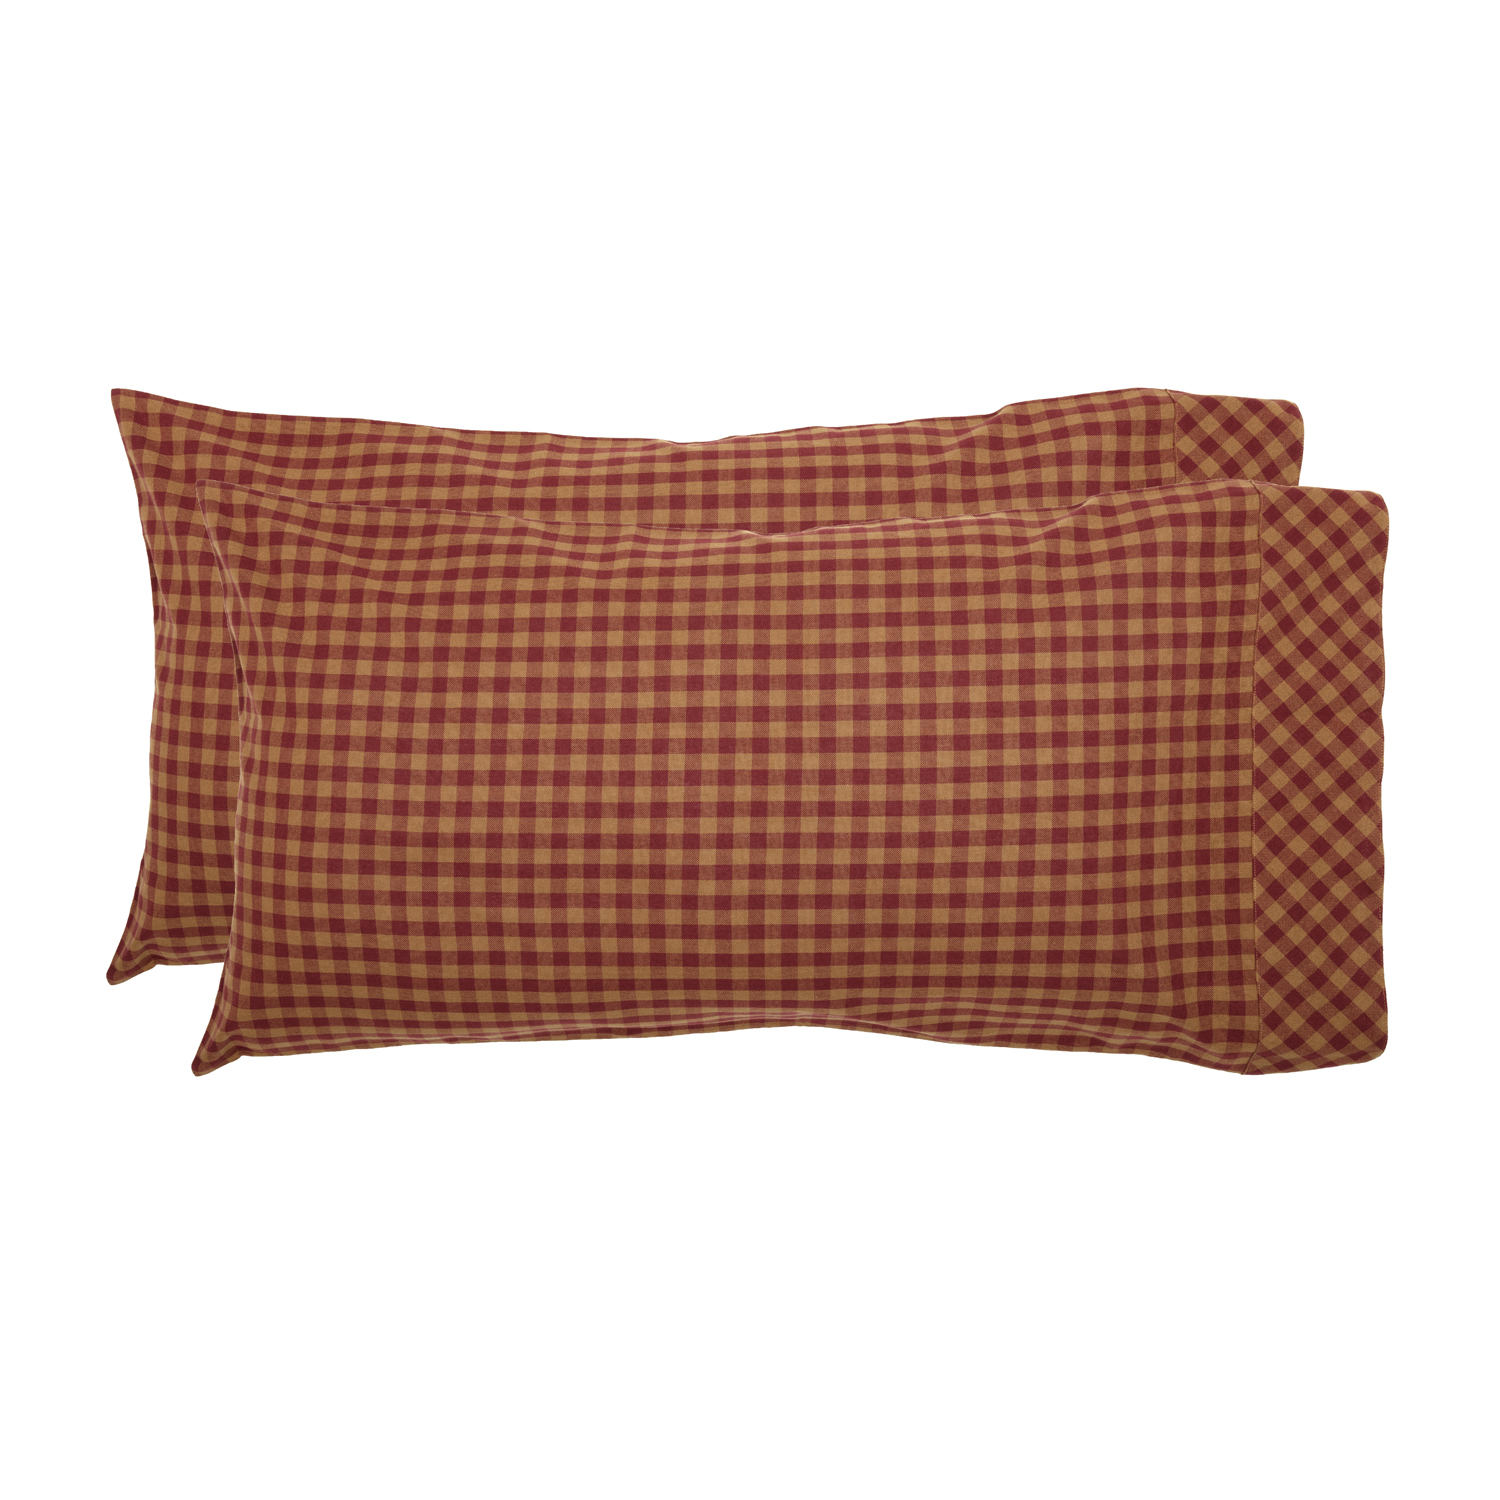 Burgundy Check King Pillow Case Set of 2 21x40